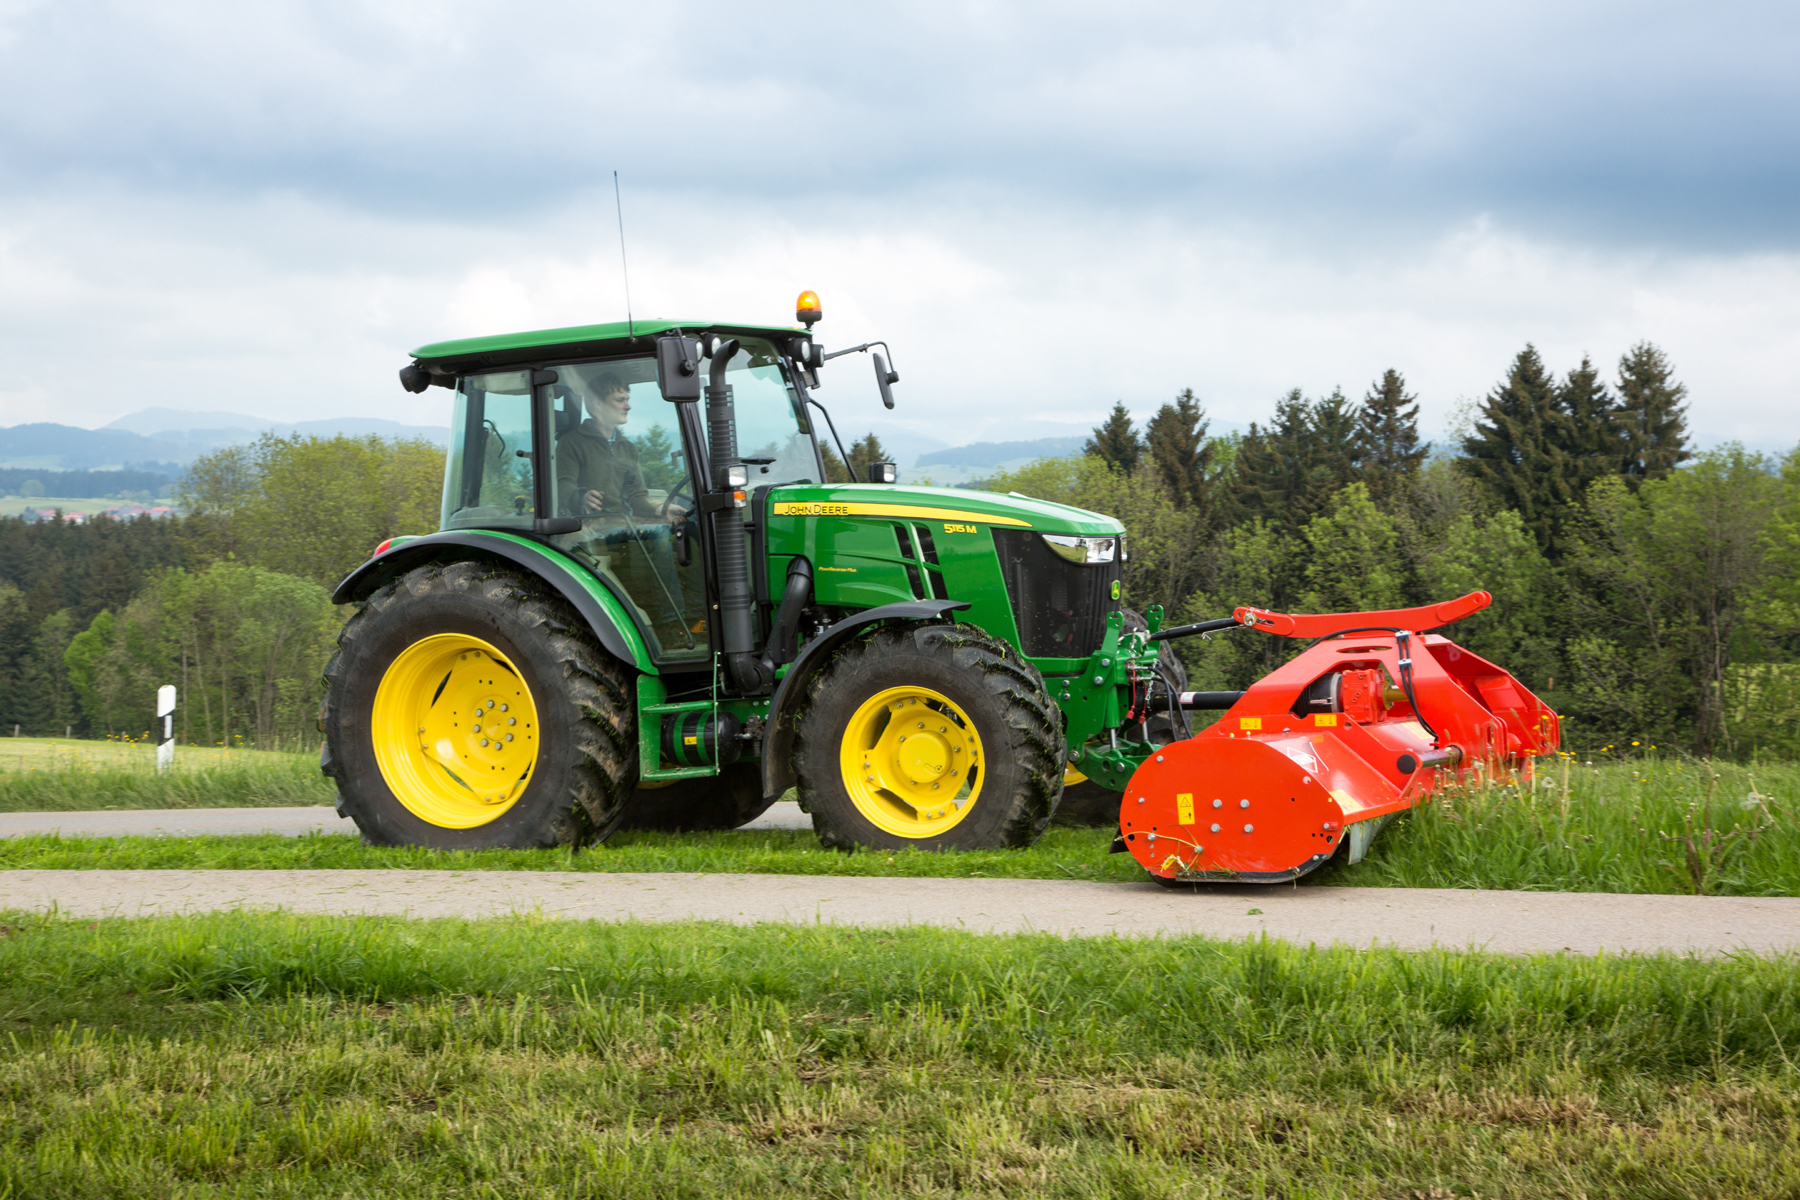 New generation 5M Series tractor from John Deere | Pitchcare Magazine